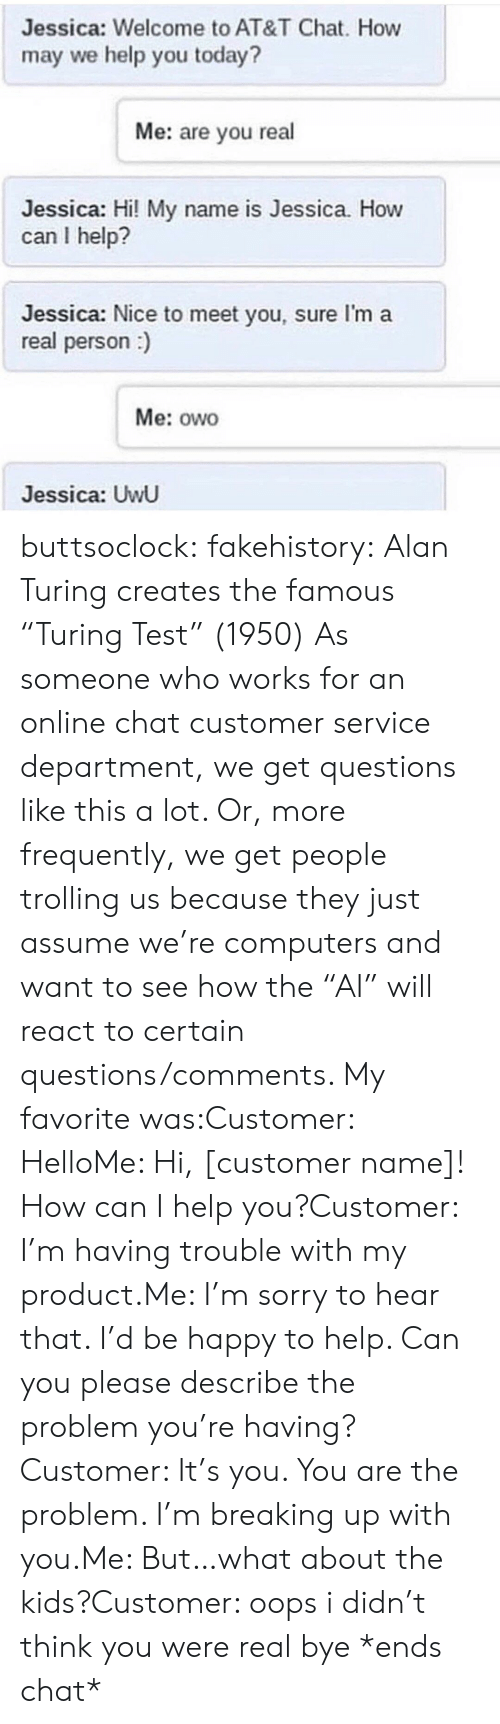 "Computers, Hello, and Sorry: Jessica: Welcome to AT&T Chat. How  may we help you today?  Me: are you real  Jessica: Hi! My name is Jessica. How  can I help?  Jessica: Nice to meet you, sure I'm a  real person)  Me: owo  Jessica: UwU buttsoclock:  fakehistory: Alan Turing creates the famous ""Turing Test"" (1950) As someone who works for an online chat customer service department, we get questions like this a lot. Or, more frequently, we get people trolling us because they just assume we're computers and want to see how the ""AI"" will react to certain questions/comments. My favorite was:Customer: HelloMe: Hi, [customer name]! How can I help you?Customer: I'm having trouble with my product.Me: I'm sorry to hear that. I'd be happy to help. Can you please describe the problem you're having?Customer: It's you. You are the problem. I'm breaking up with you.Me: But…what about the kids?Customer: oops i didn't think you were real bye *ends chat*"